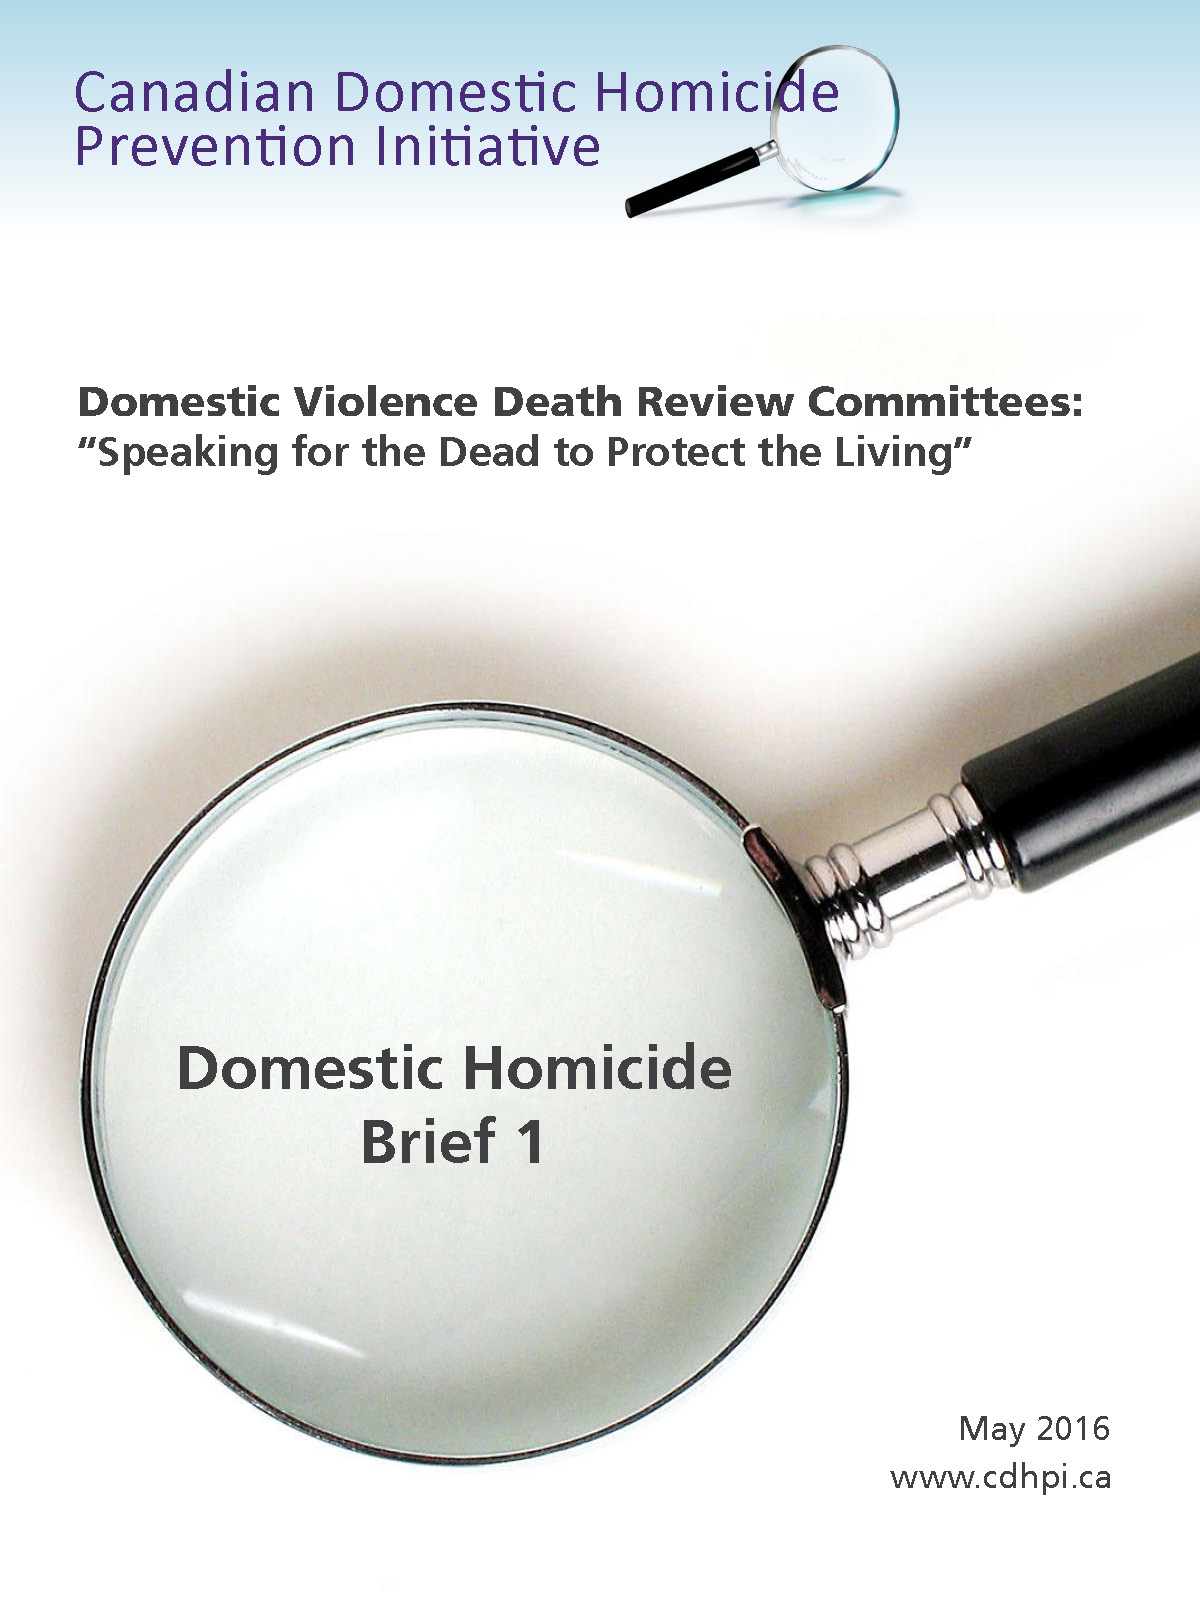 Logo with magnifying glass for Canadian Domestic Homicide Prevention Initiative